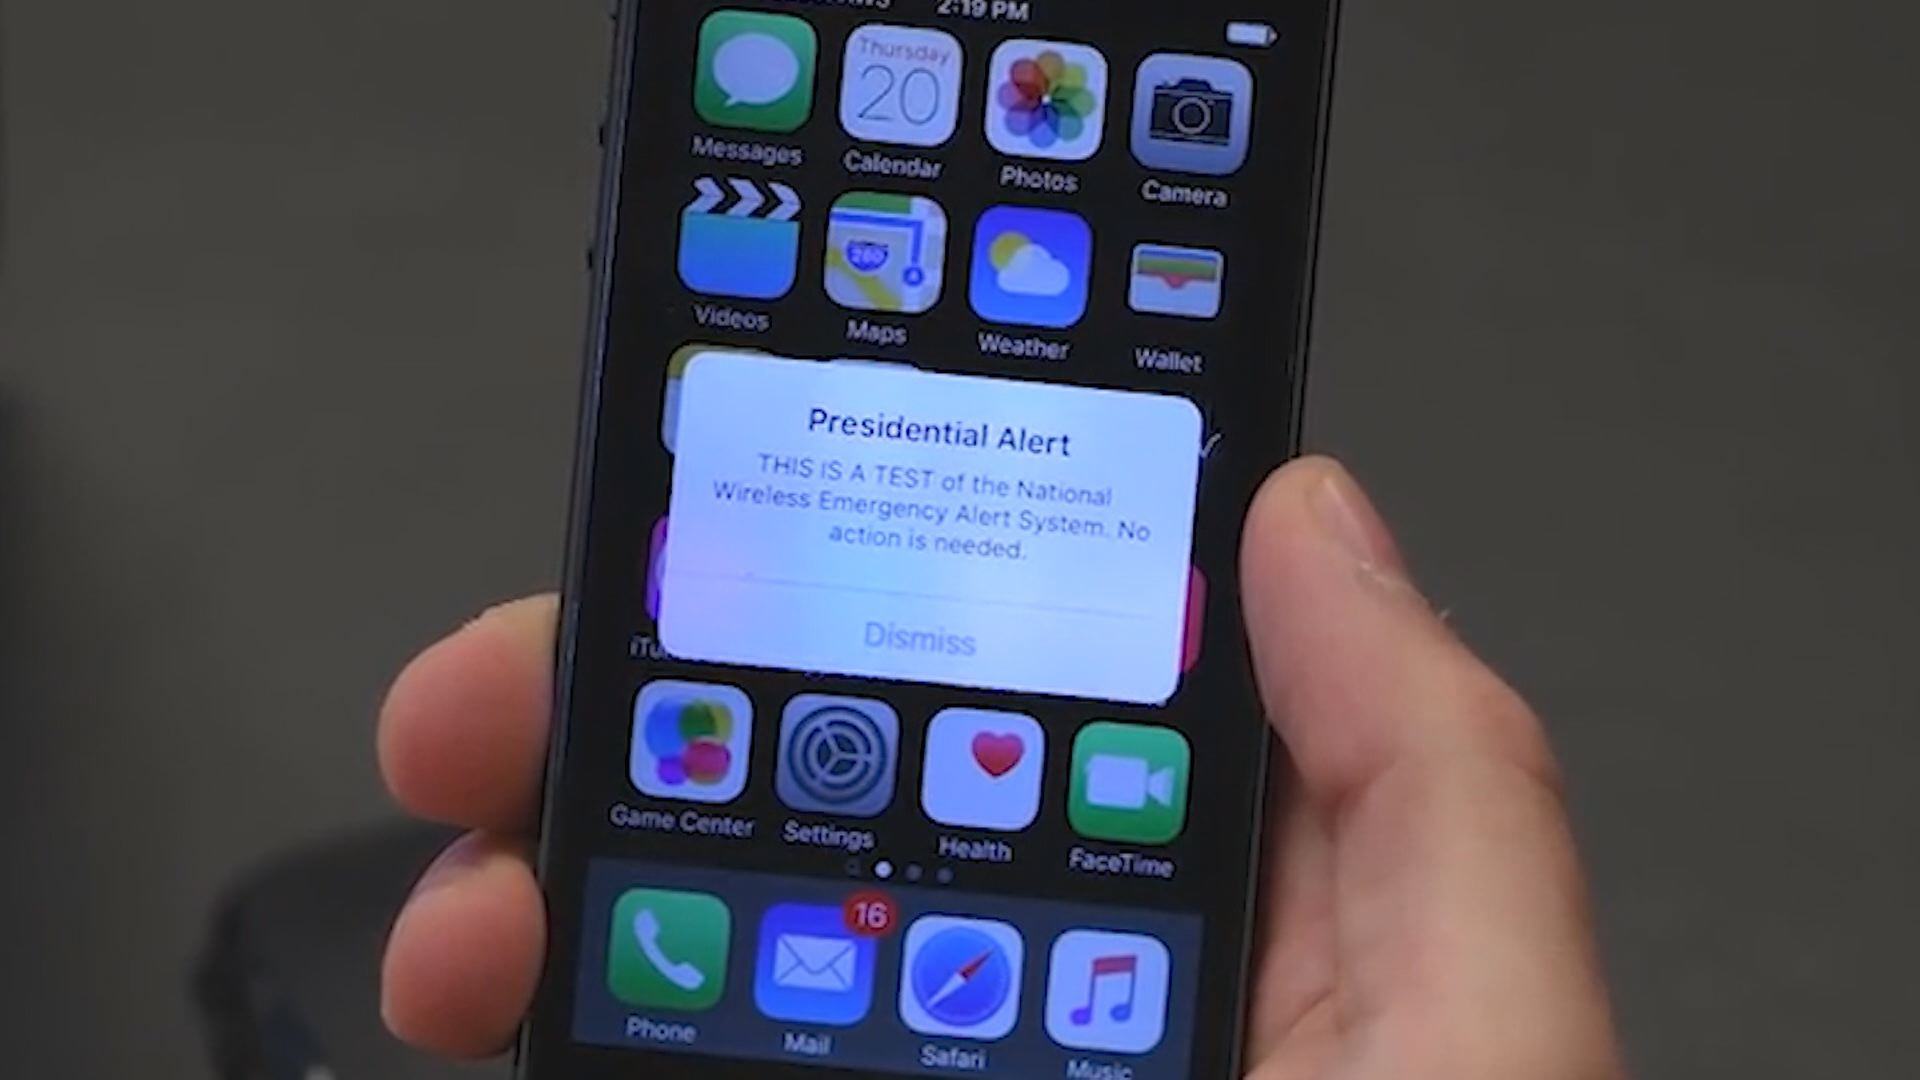 Presidential Alert System Test Coming Today Oct 3 In The Us